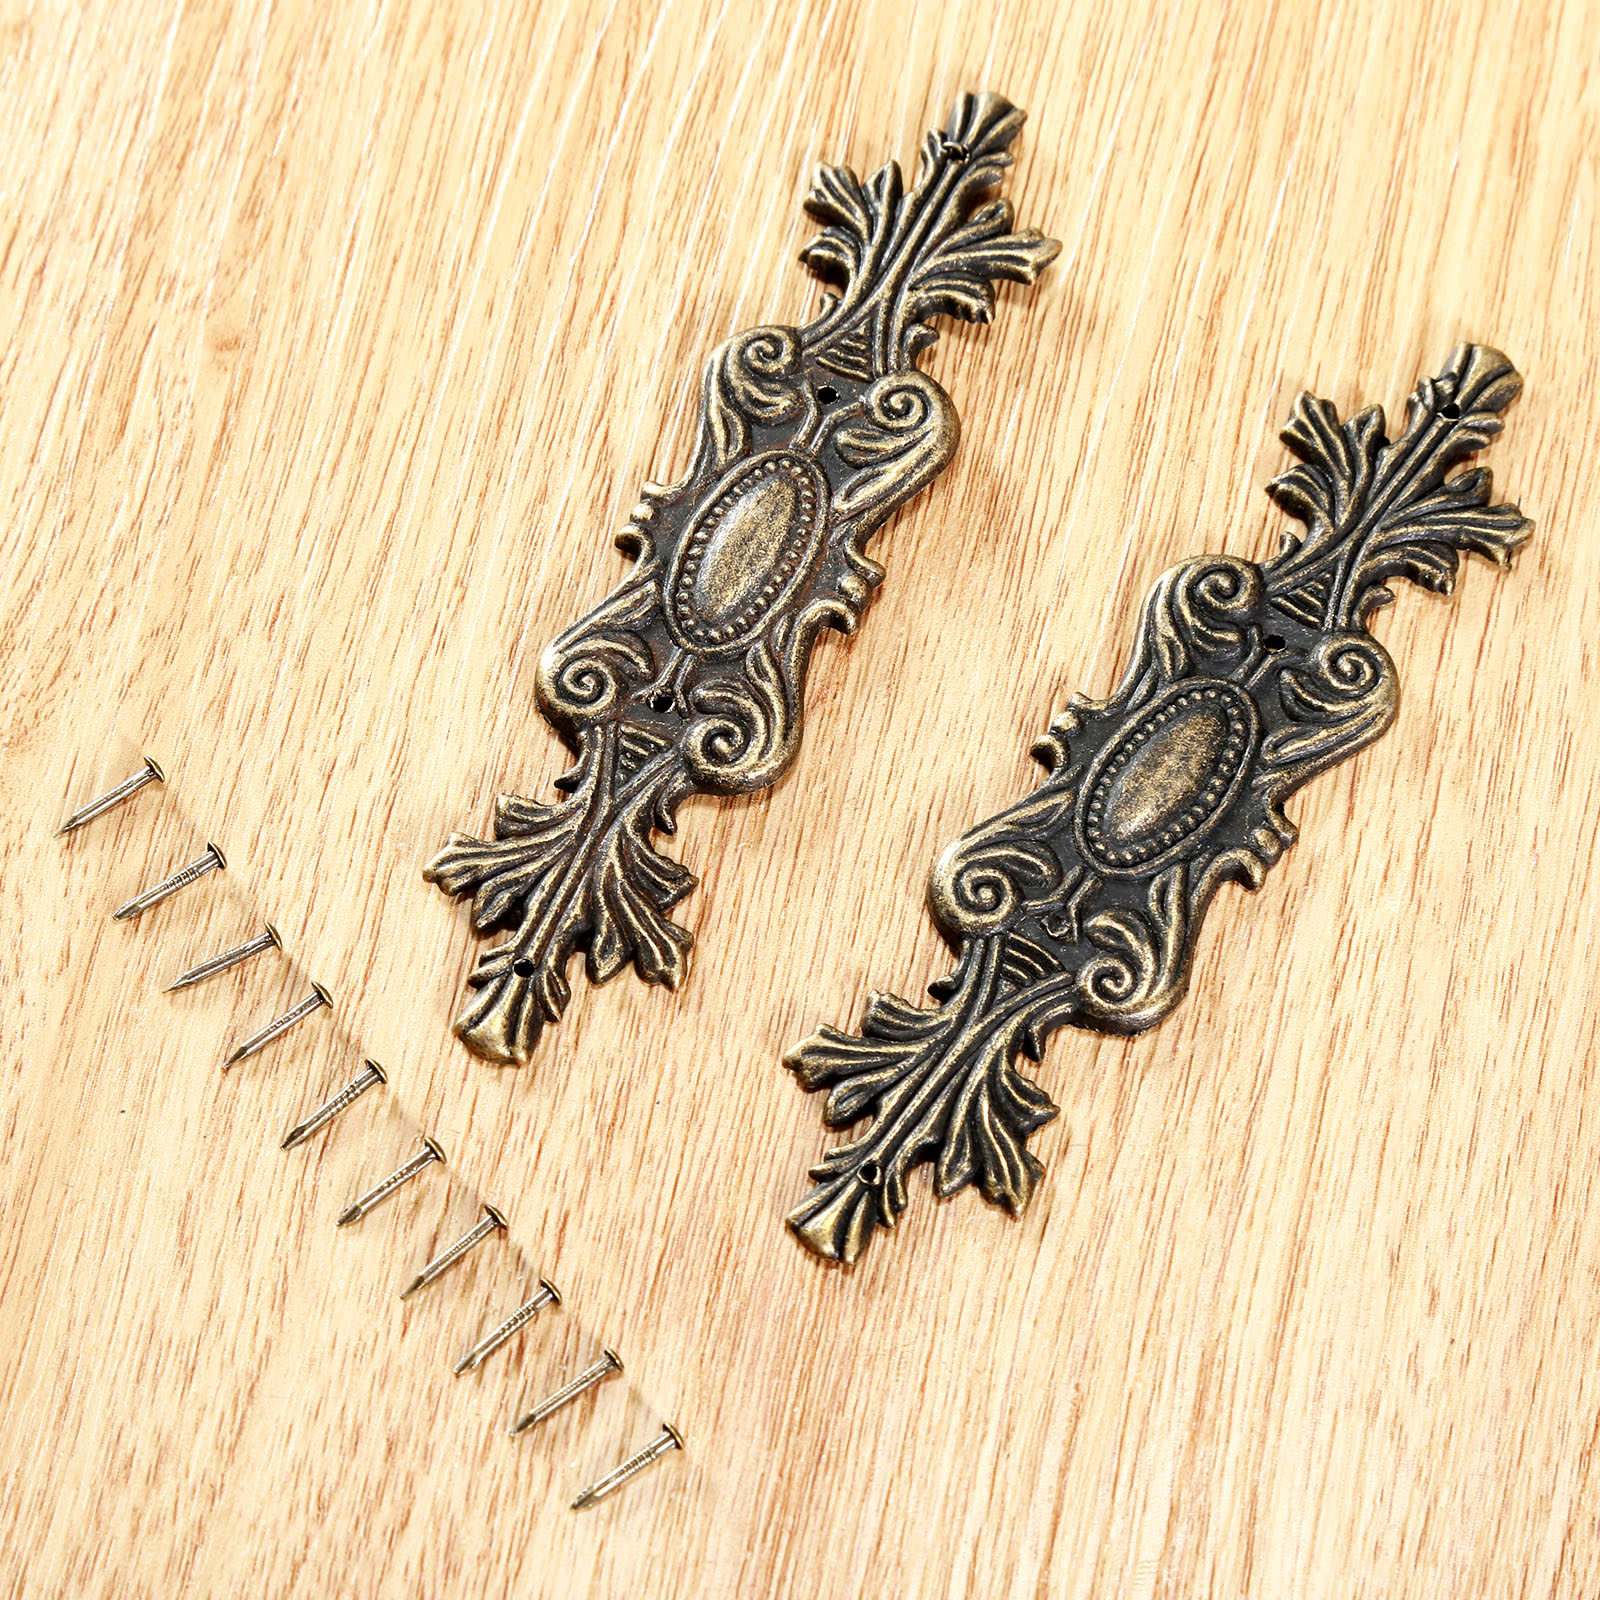 2pcs Antique Decorative Corner Bracket For Furniture Wooden Box Feet Protector Ings Christmas Supplies